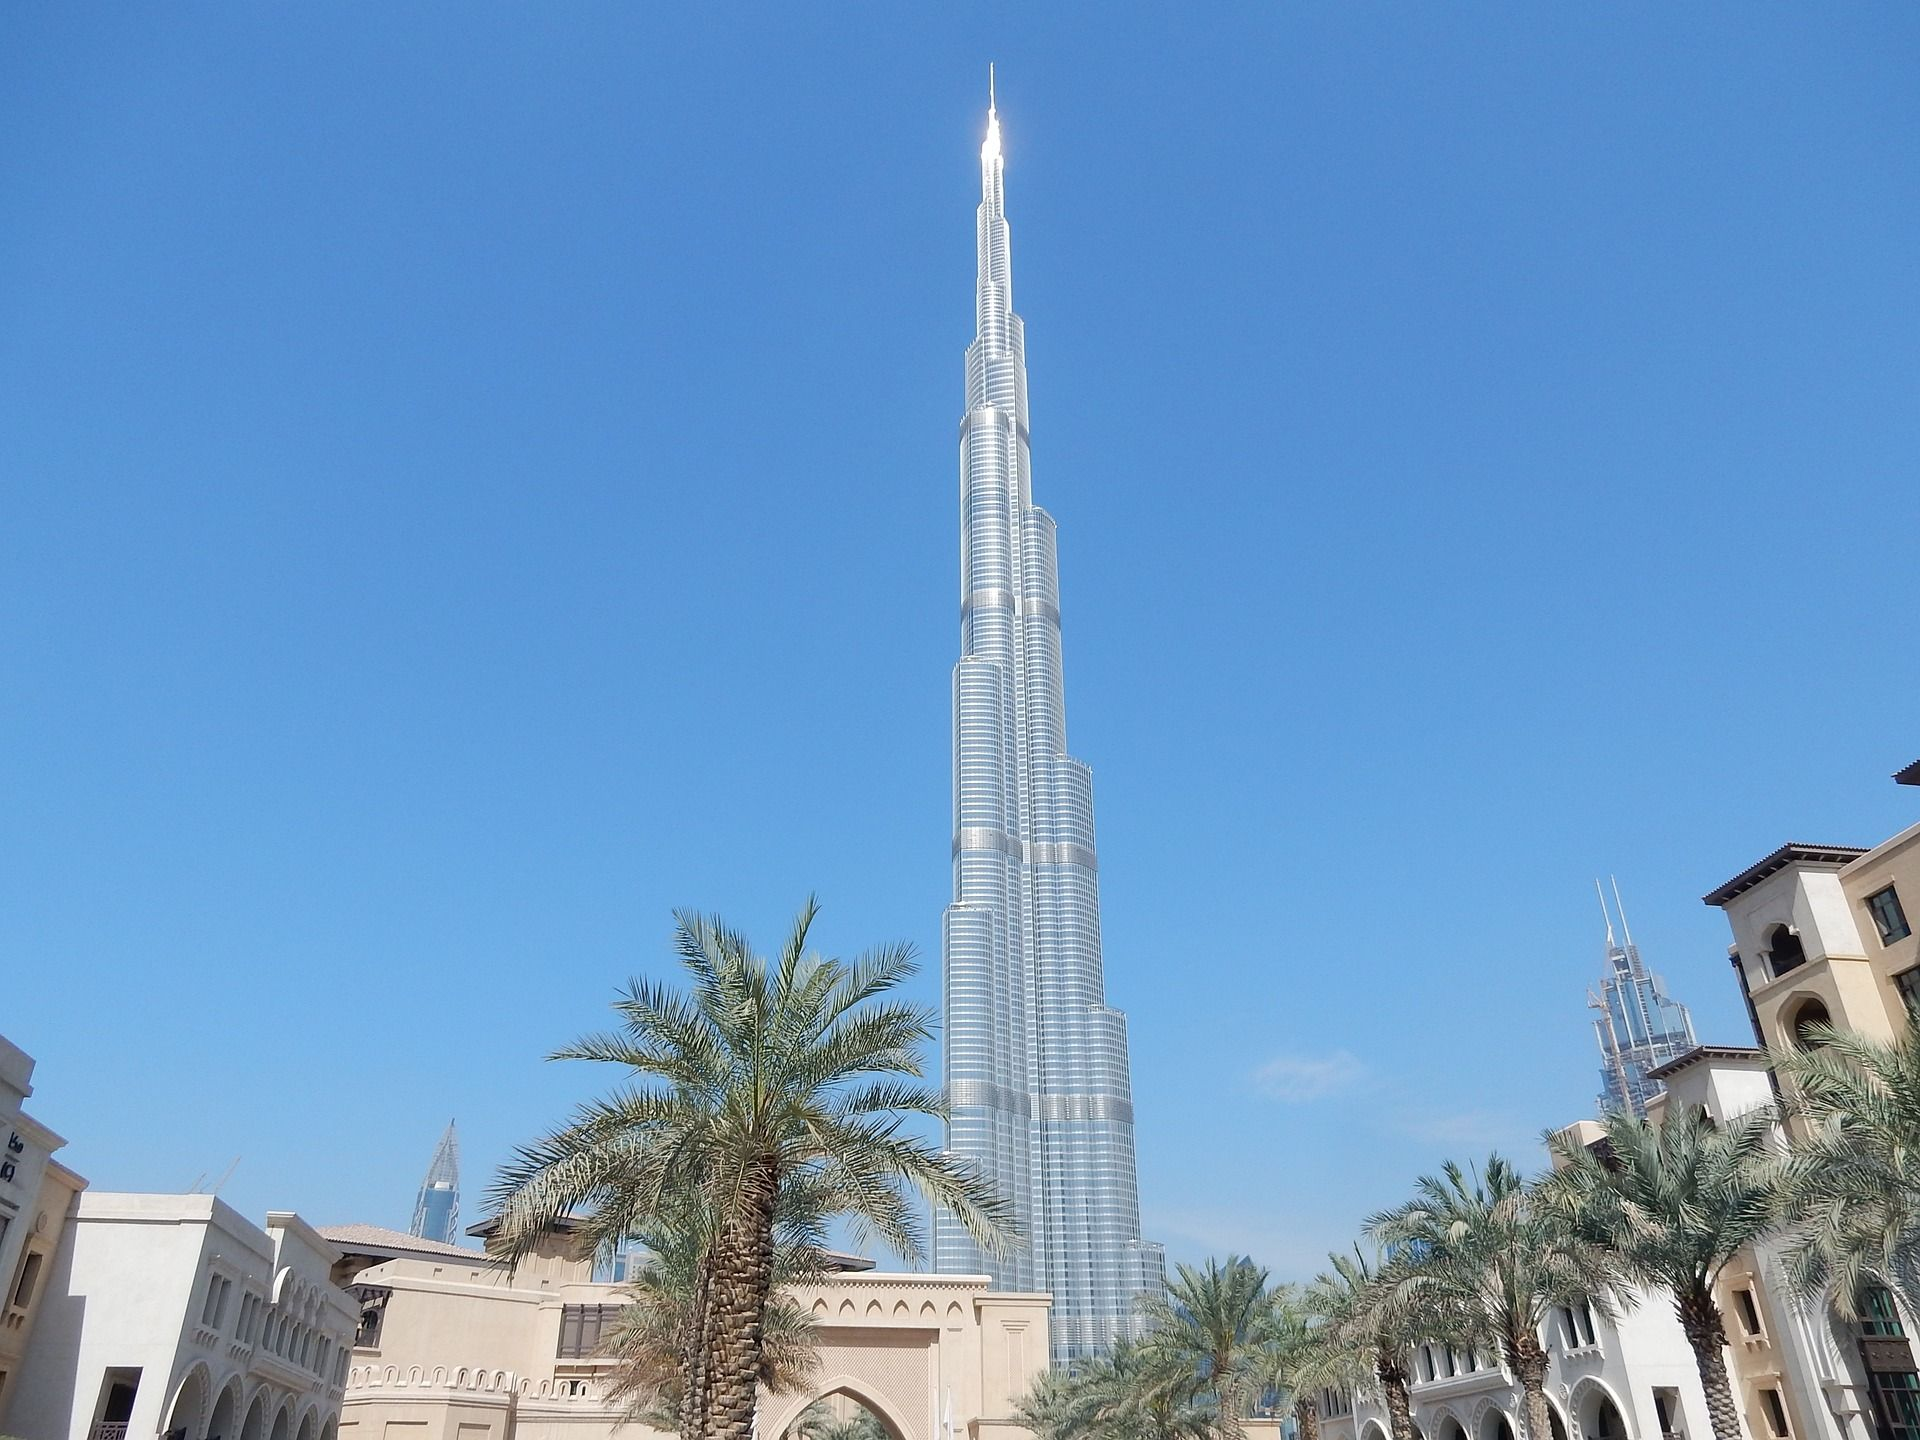 Burj Khalifa looks completely stunning from this angle